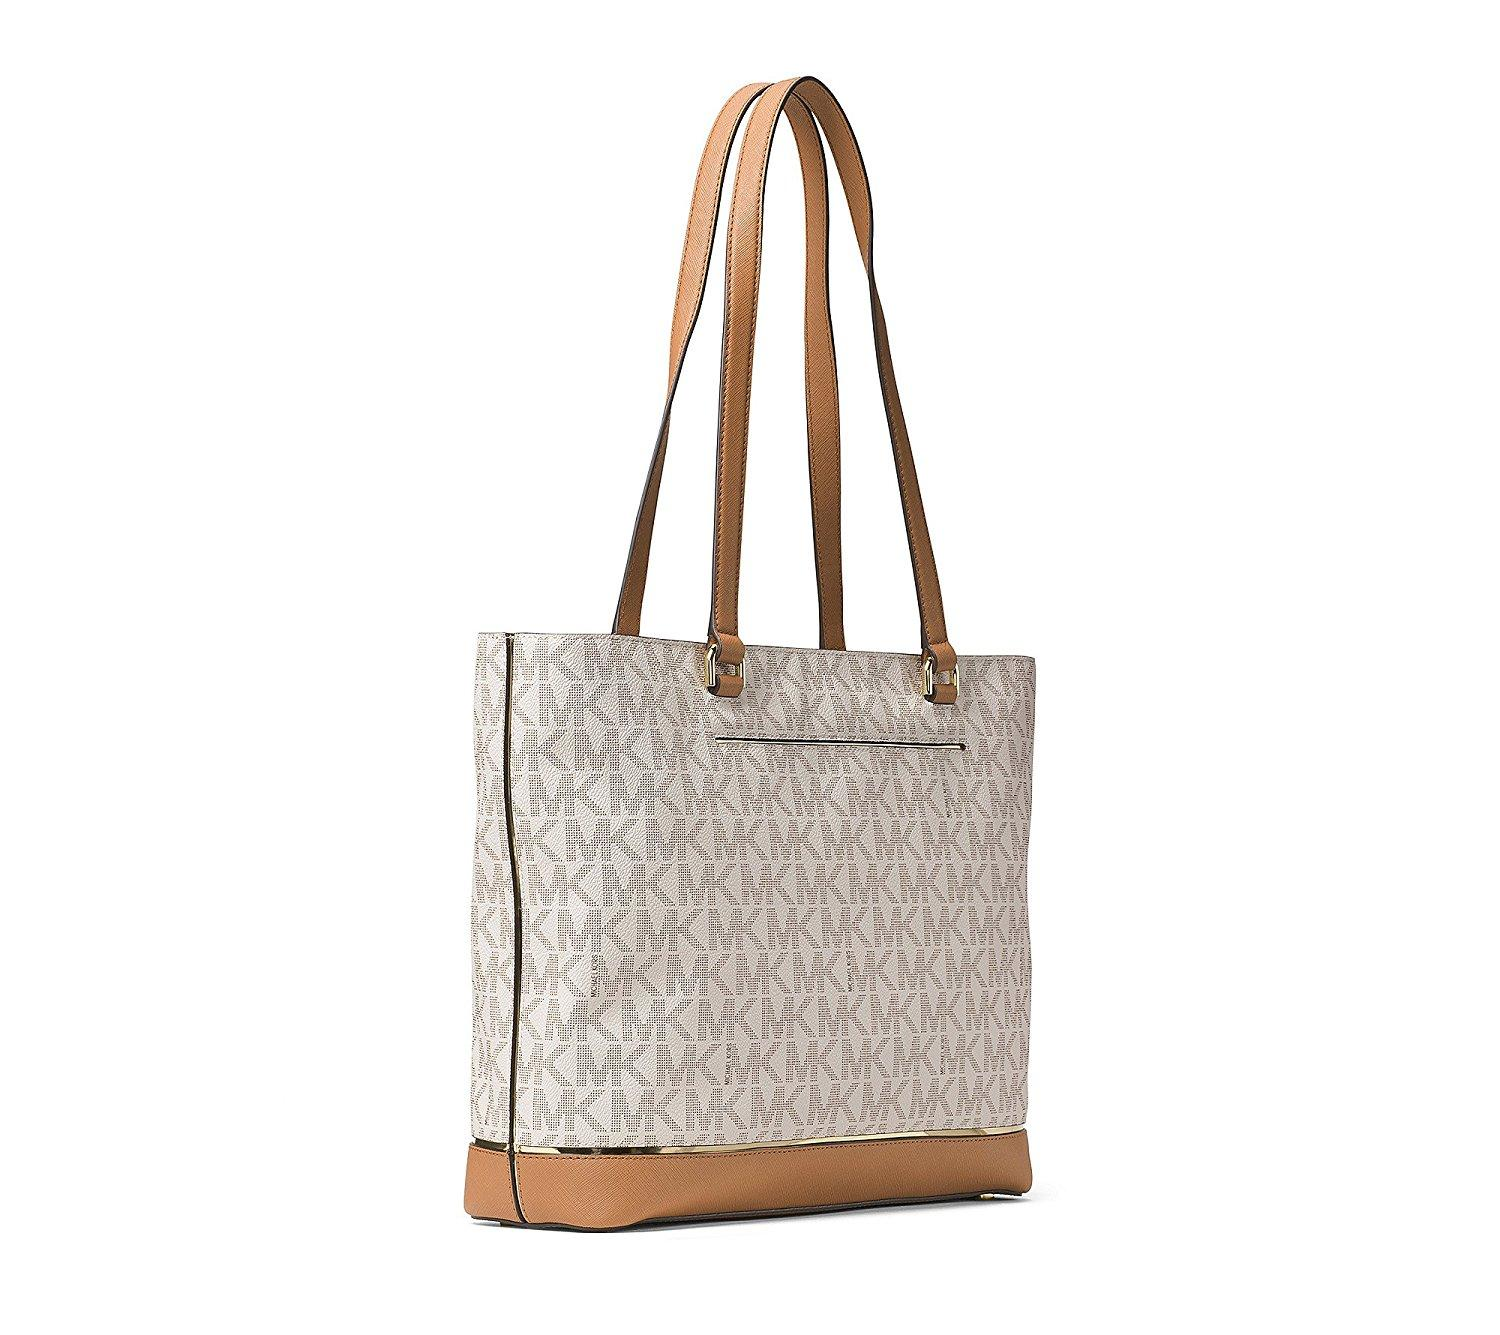 6e21b1d470a6 ... purse 07a68 cfb65; clearance michael kors frame out item large north  south signature tote in vanilla. 1234 7a79f